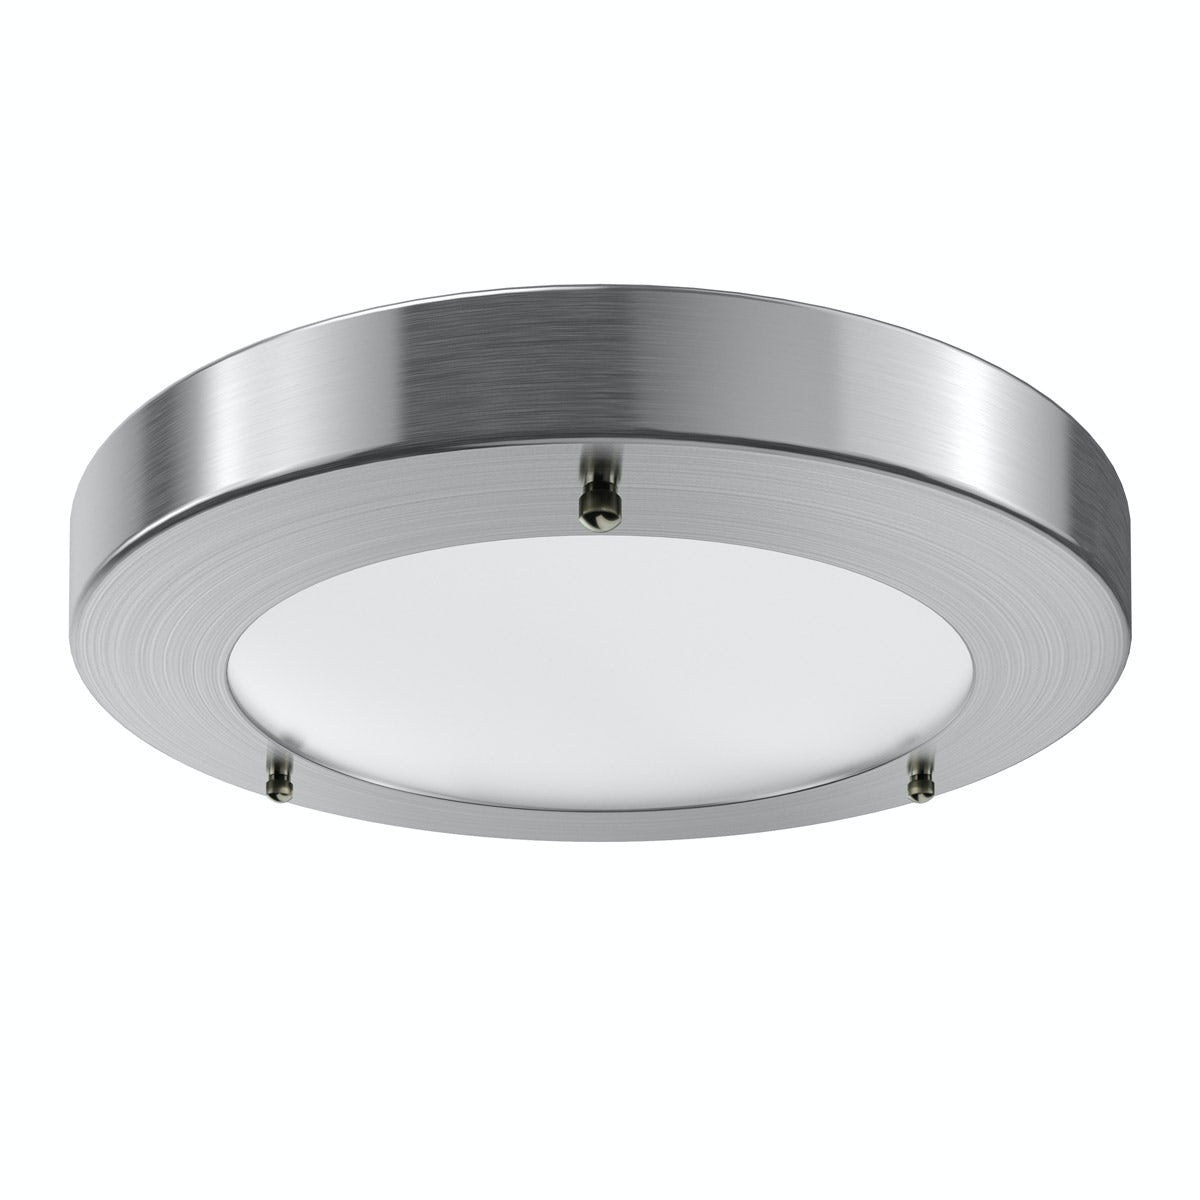 Ceiling Light Offers: Forum Llum Large Round Flush Bathroom Ceiling Light At